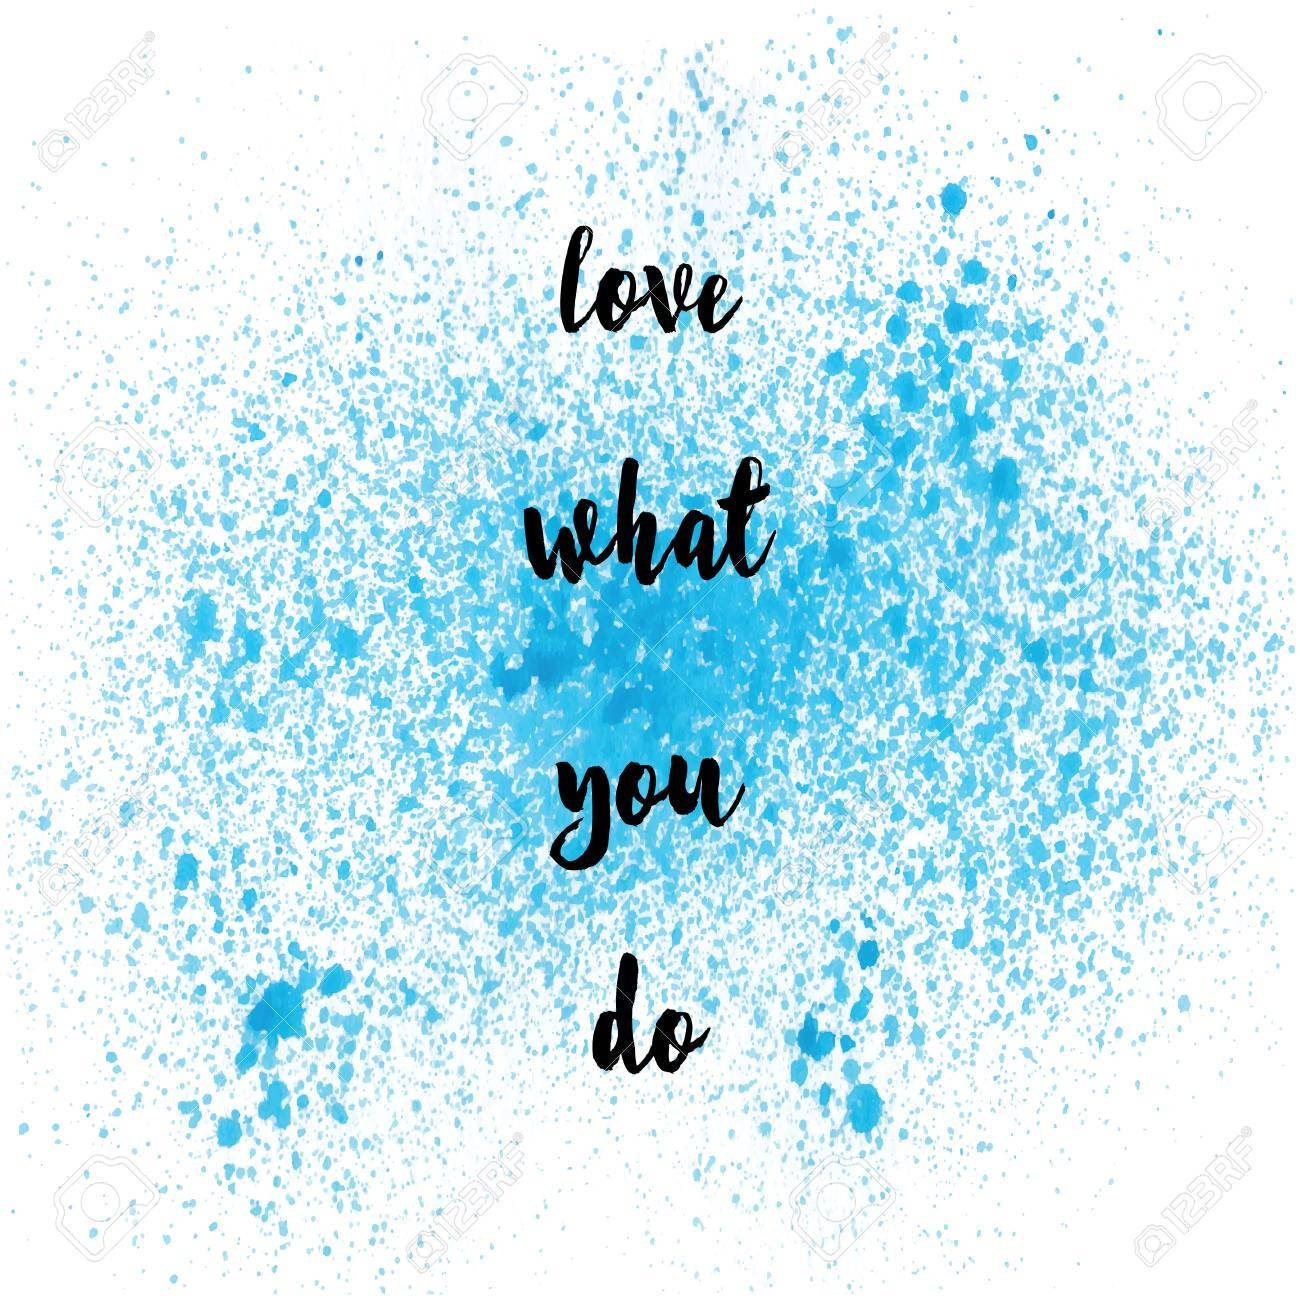 quote on blue spray paint background stock photo